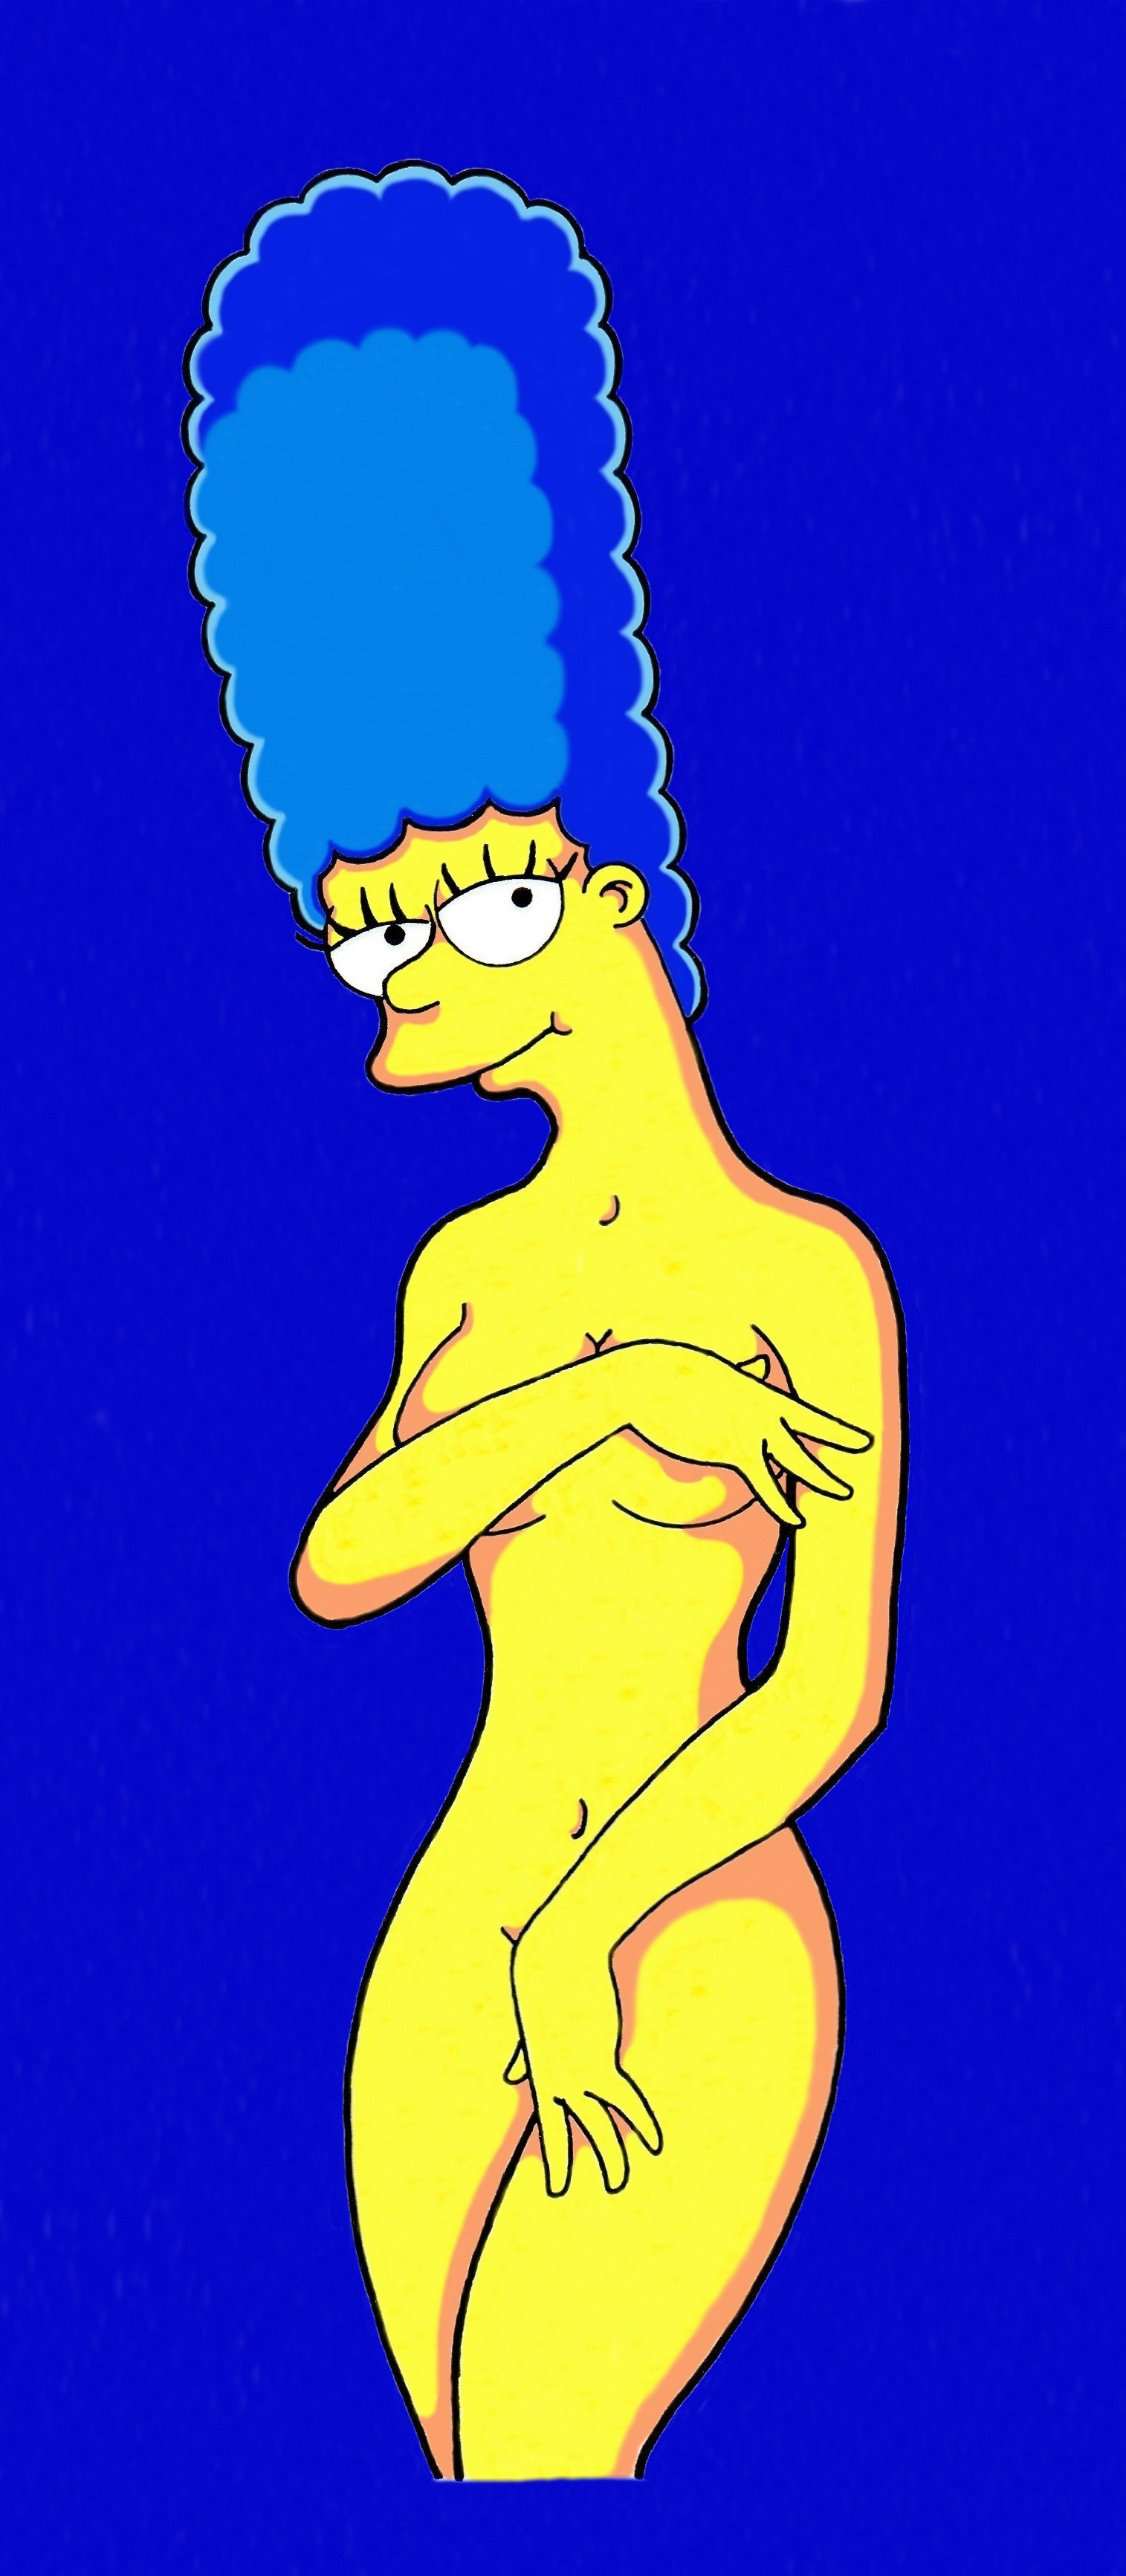 Notices marge simpson naked